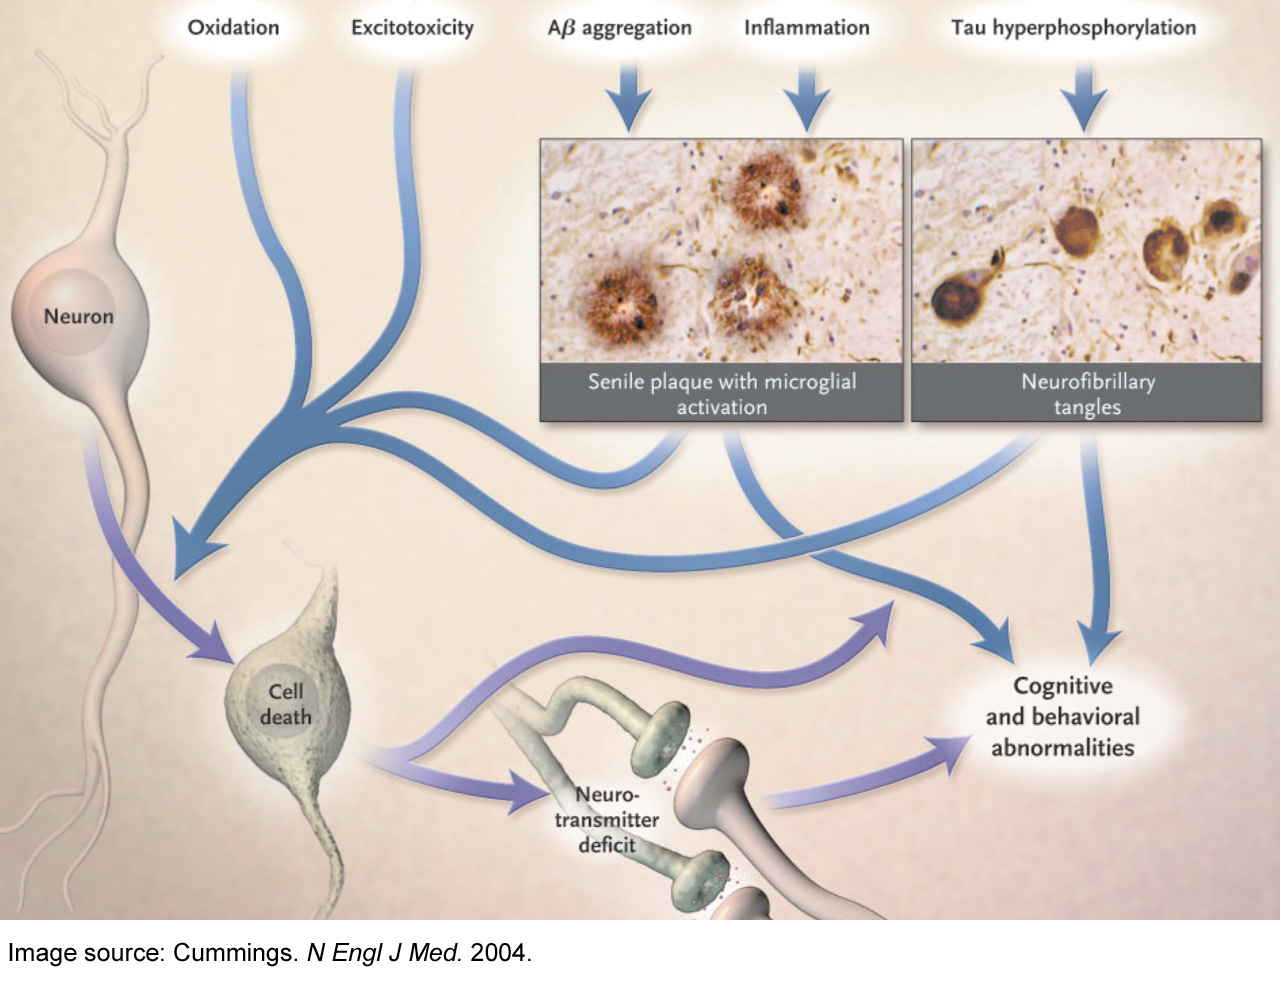 Alzheimer's disease pathophysiology – Cummings 2004 image